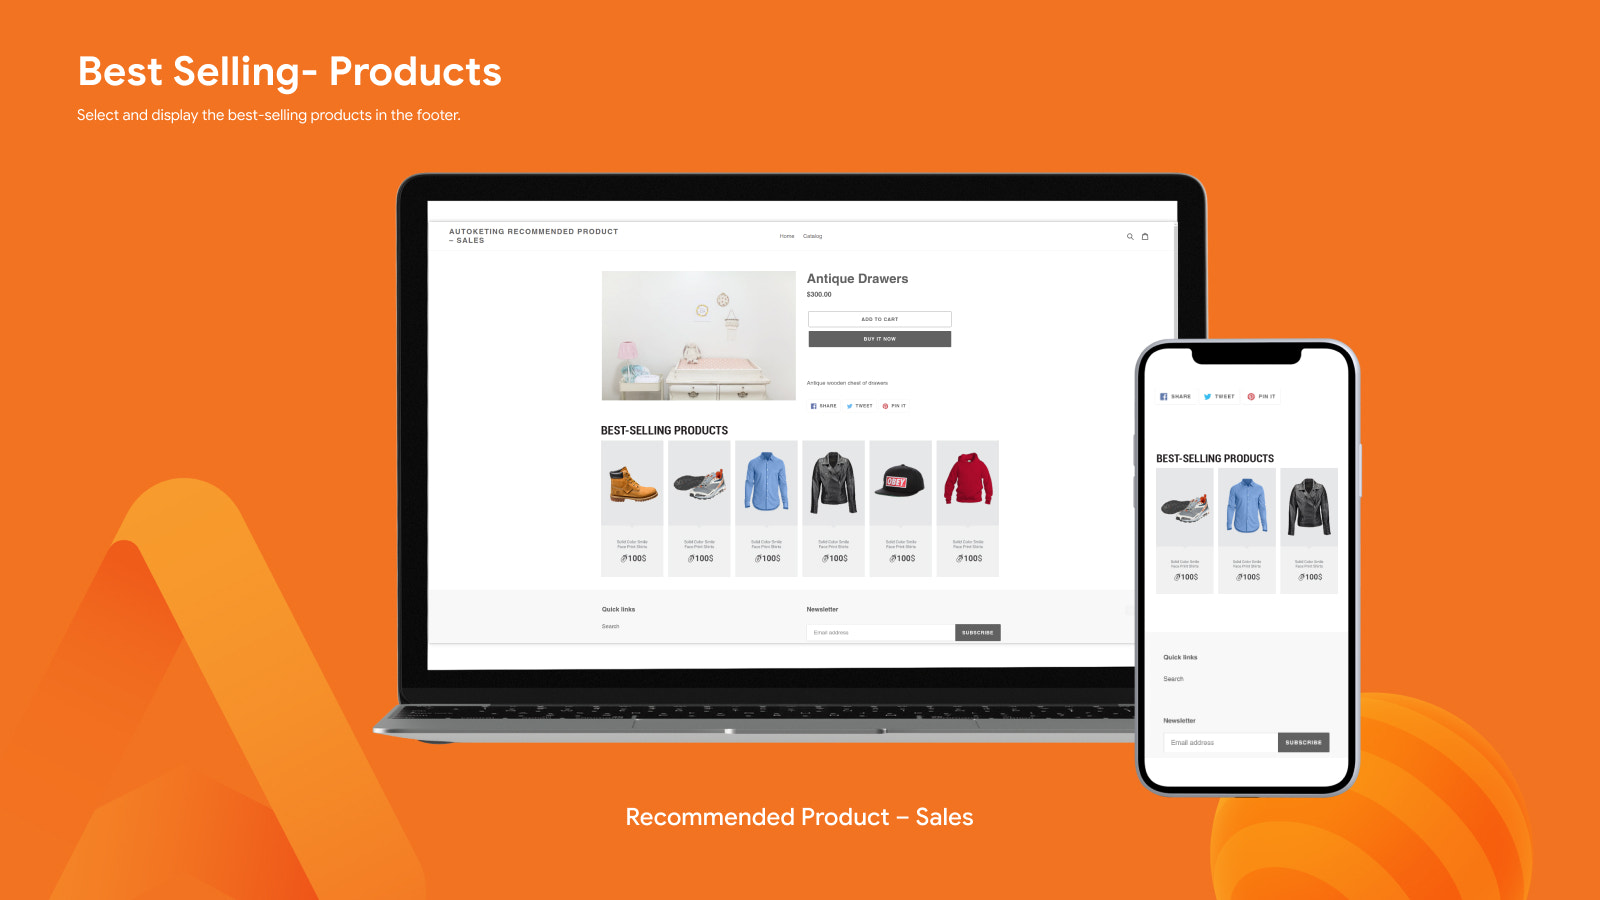 BEST-SELLING PRODUCT - RECOMMENDED PRODUCTS